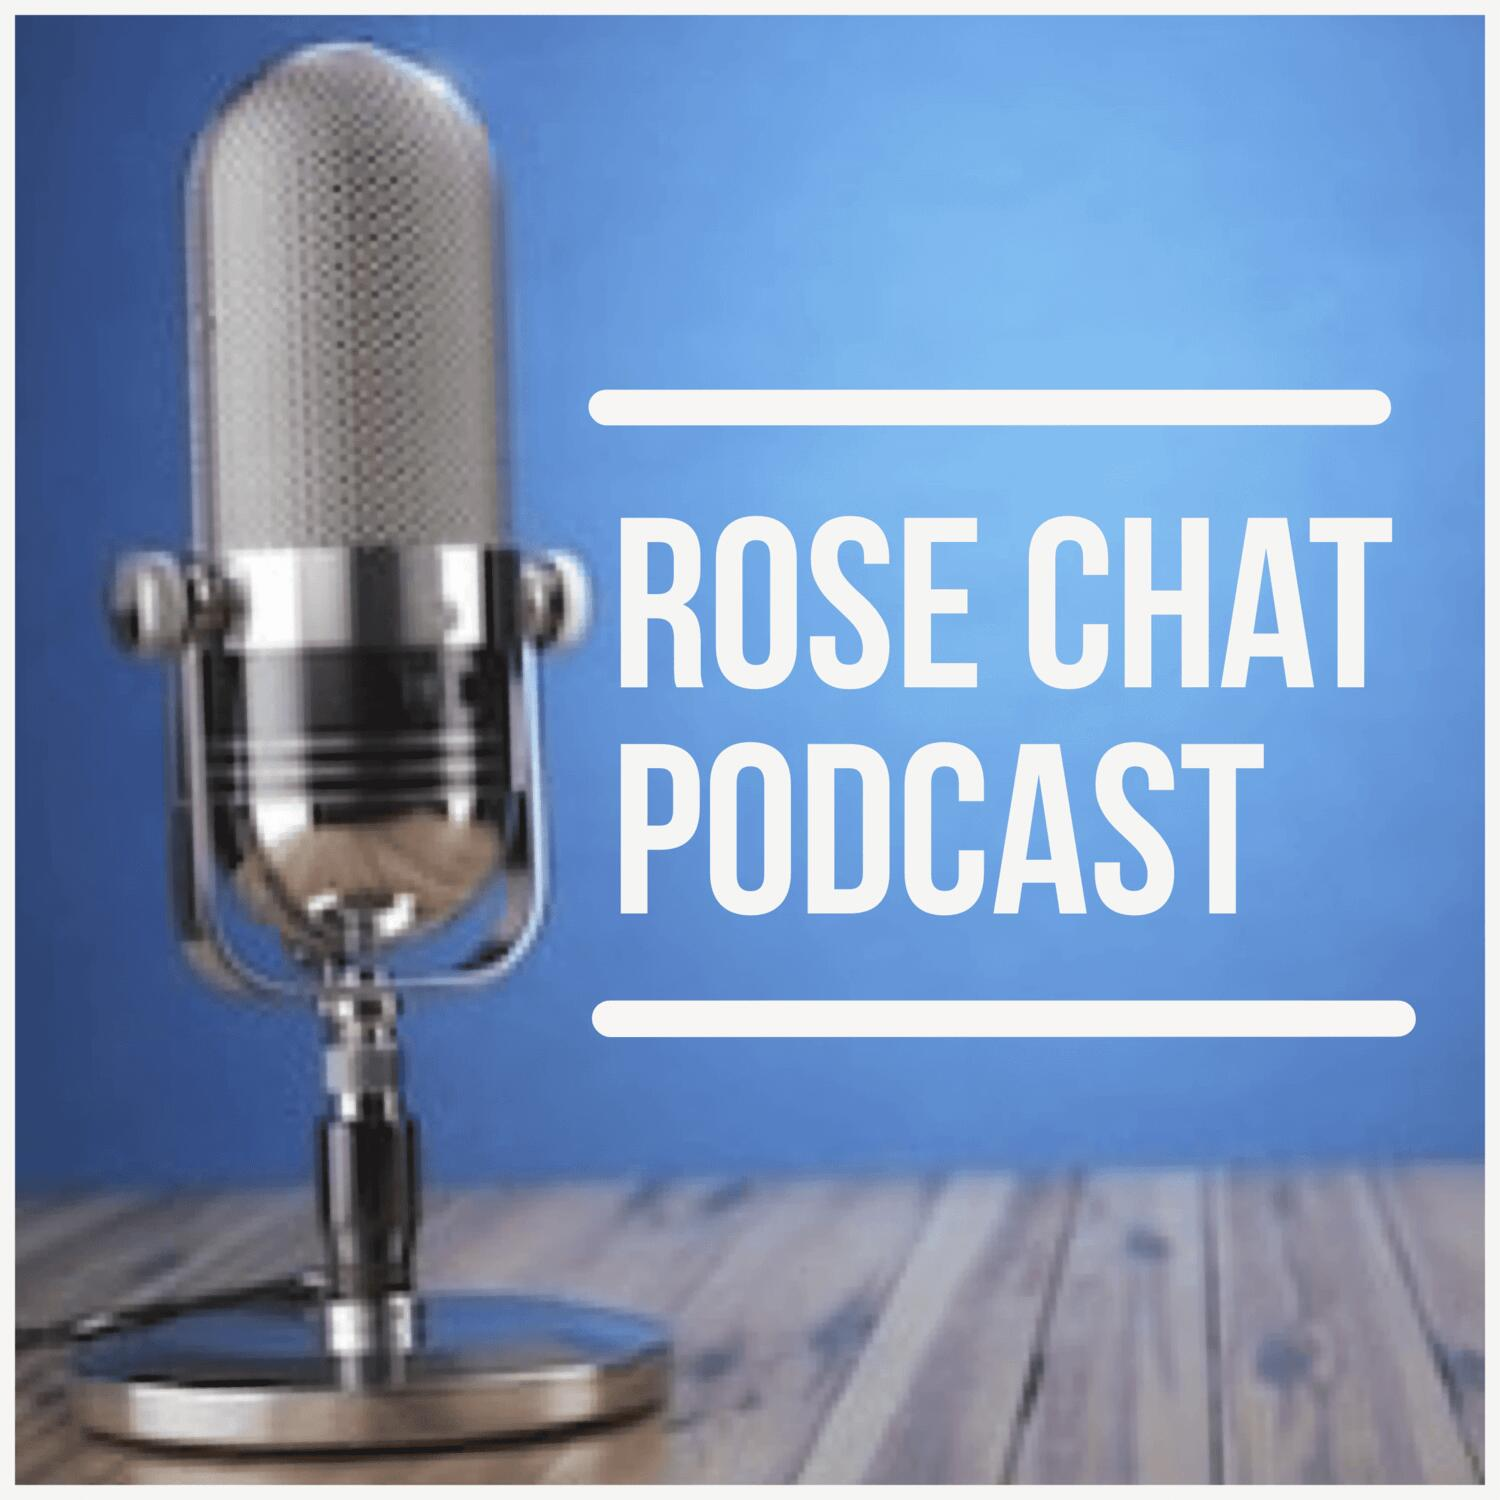 Listen to the Rose Chat Podcast Episode - National Clean Plant Network   Dr. David Zlesak on iHeartRadio   iHeartRadio